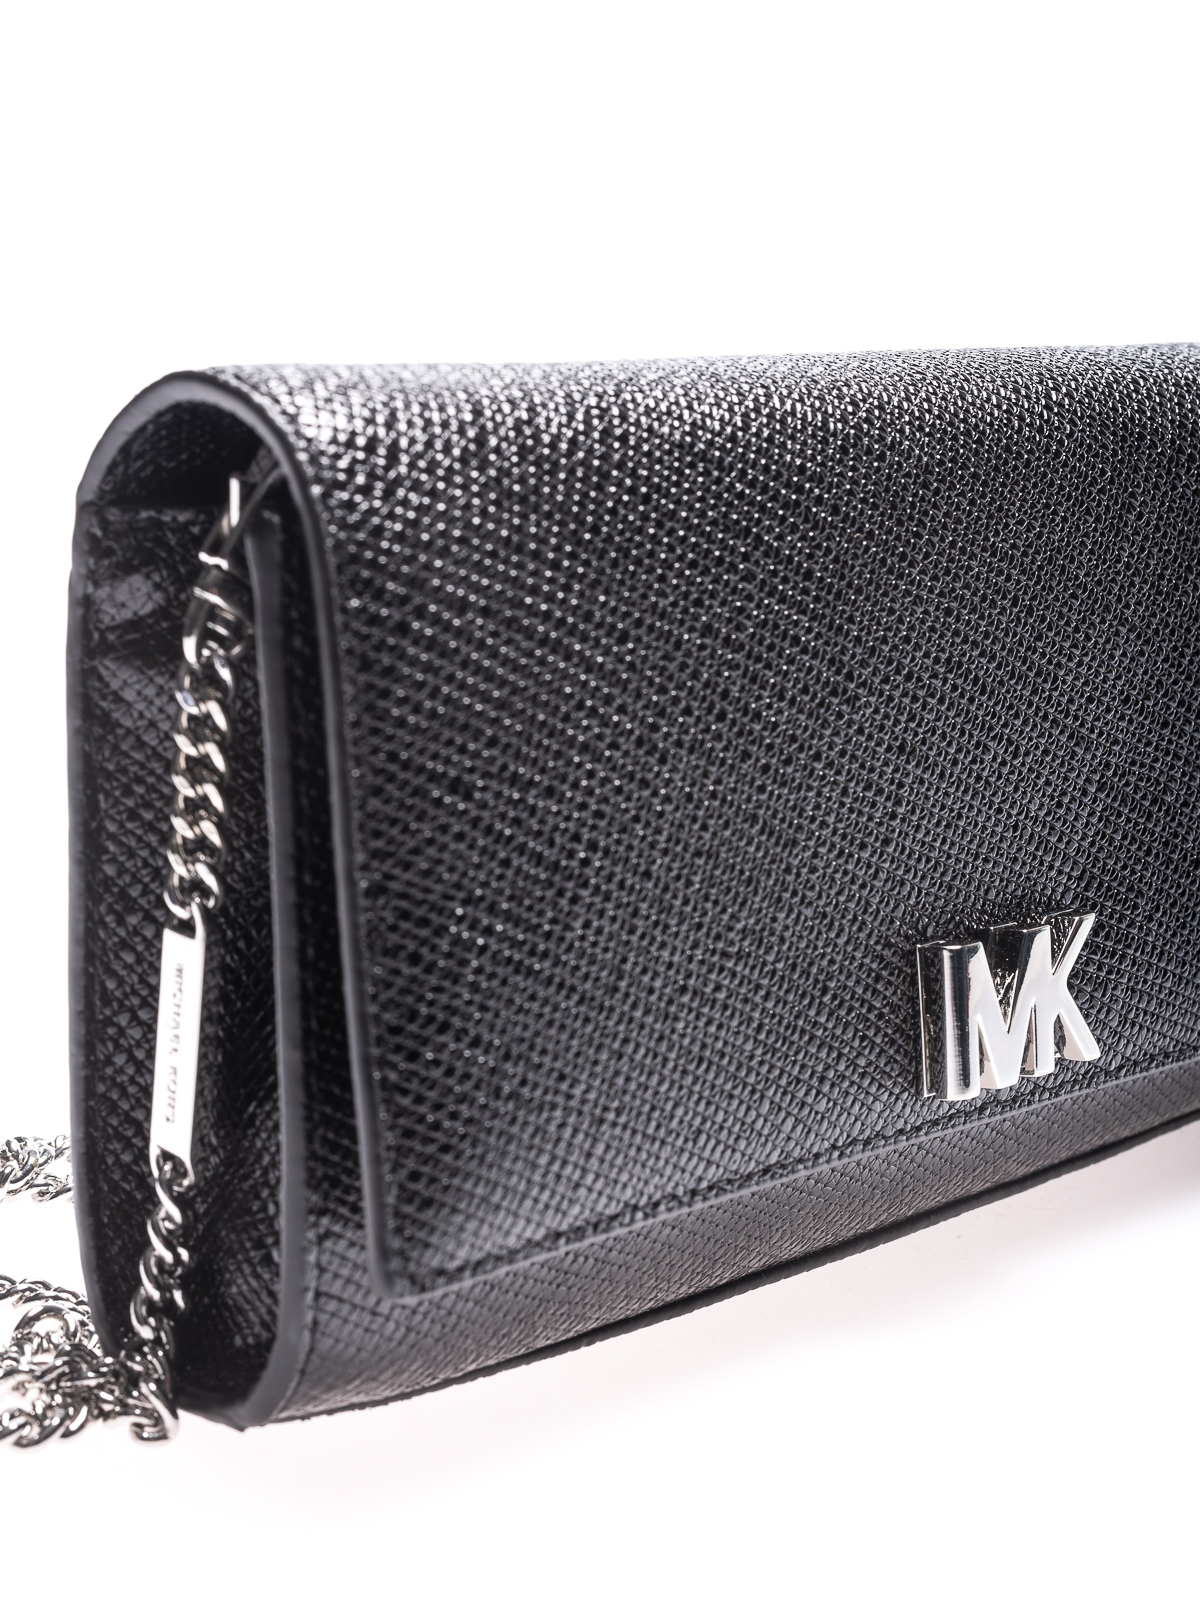 100% authentisch neueste Kollektion helle n Farbe Michael Kors - Mott grainy leather envelope clutch ...